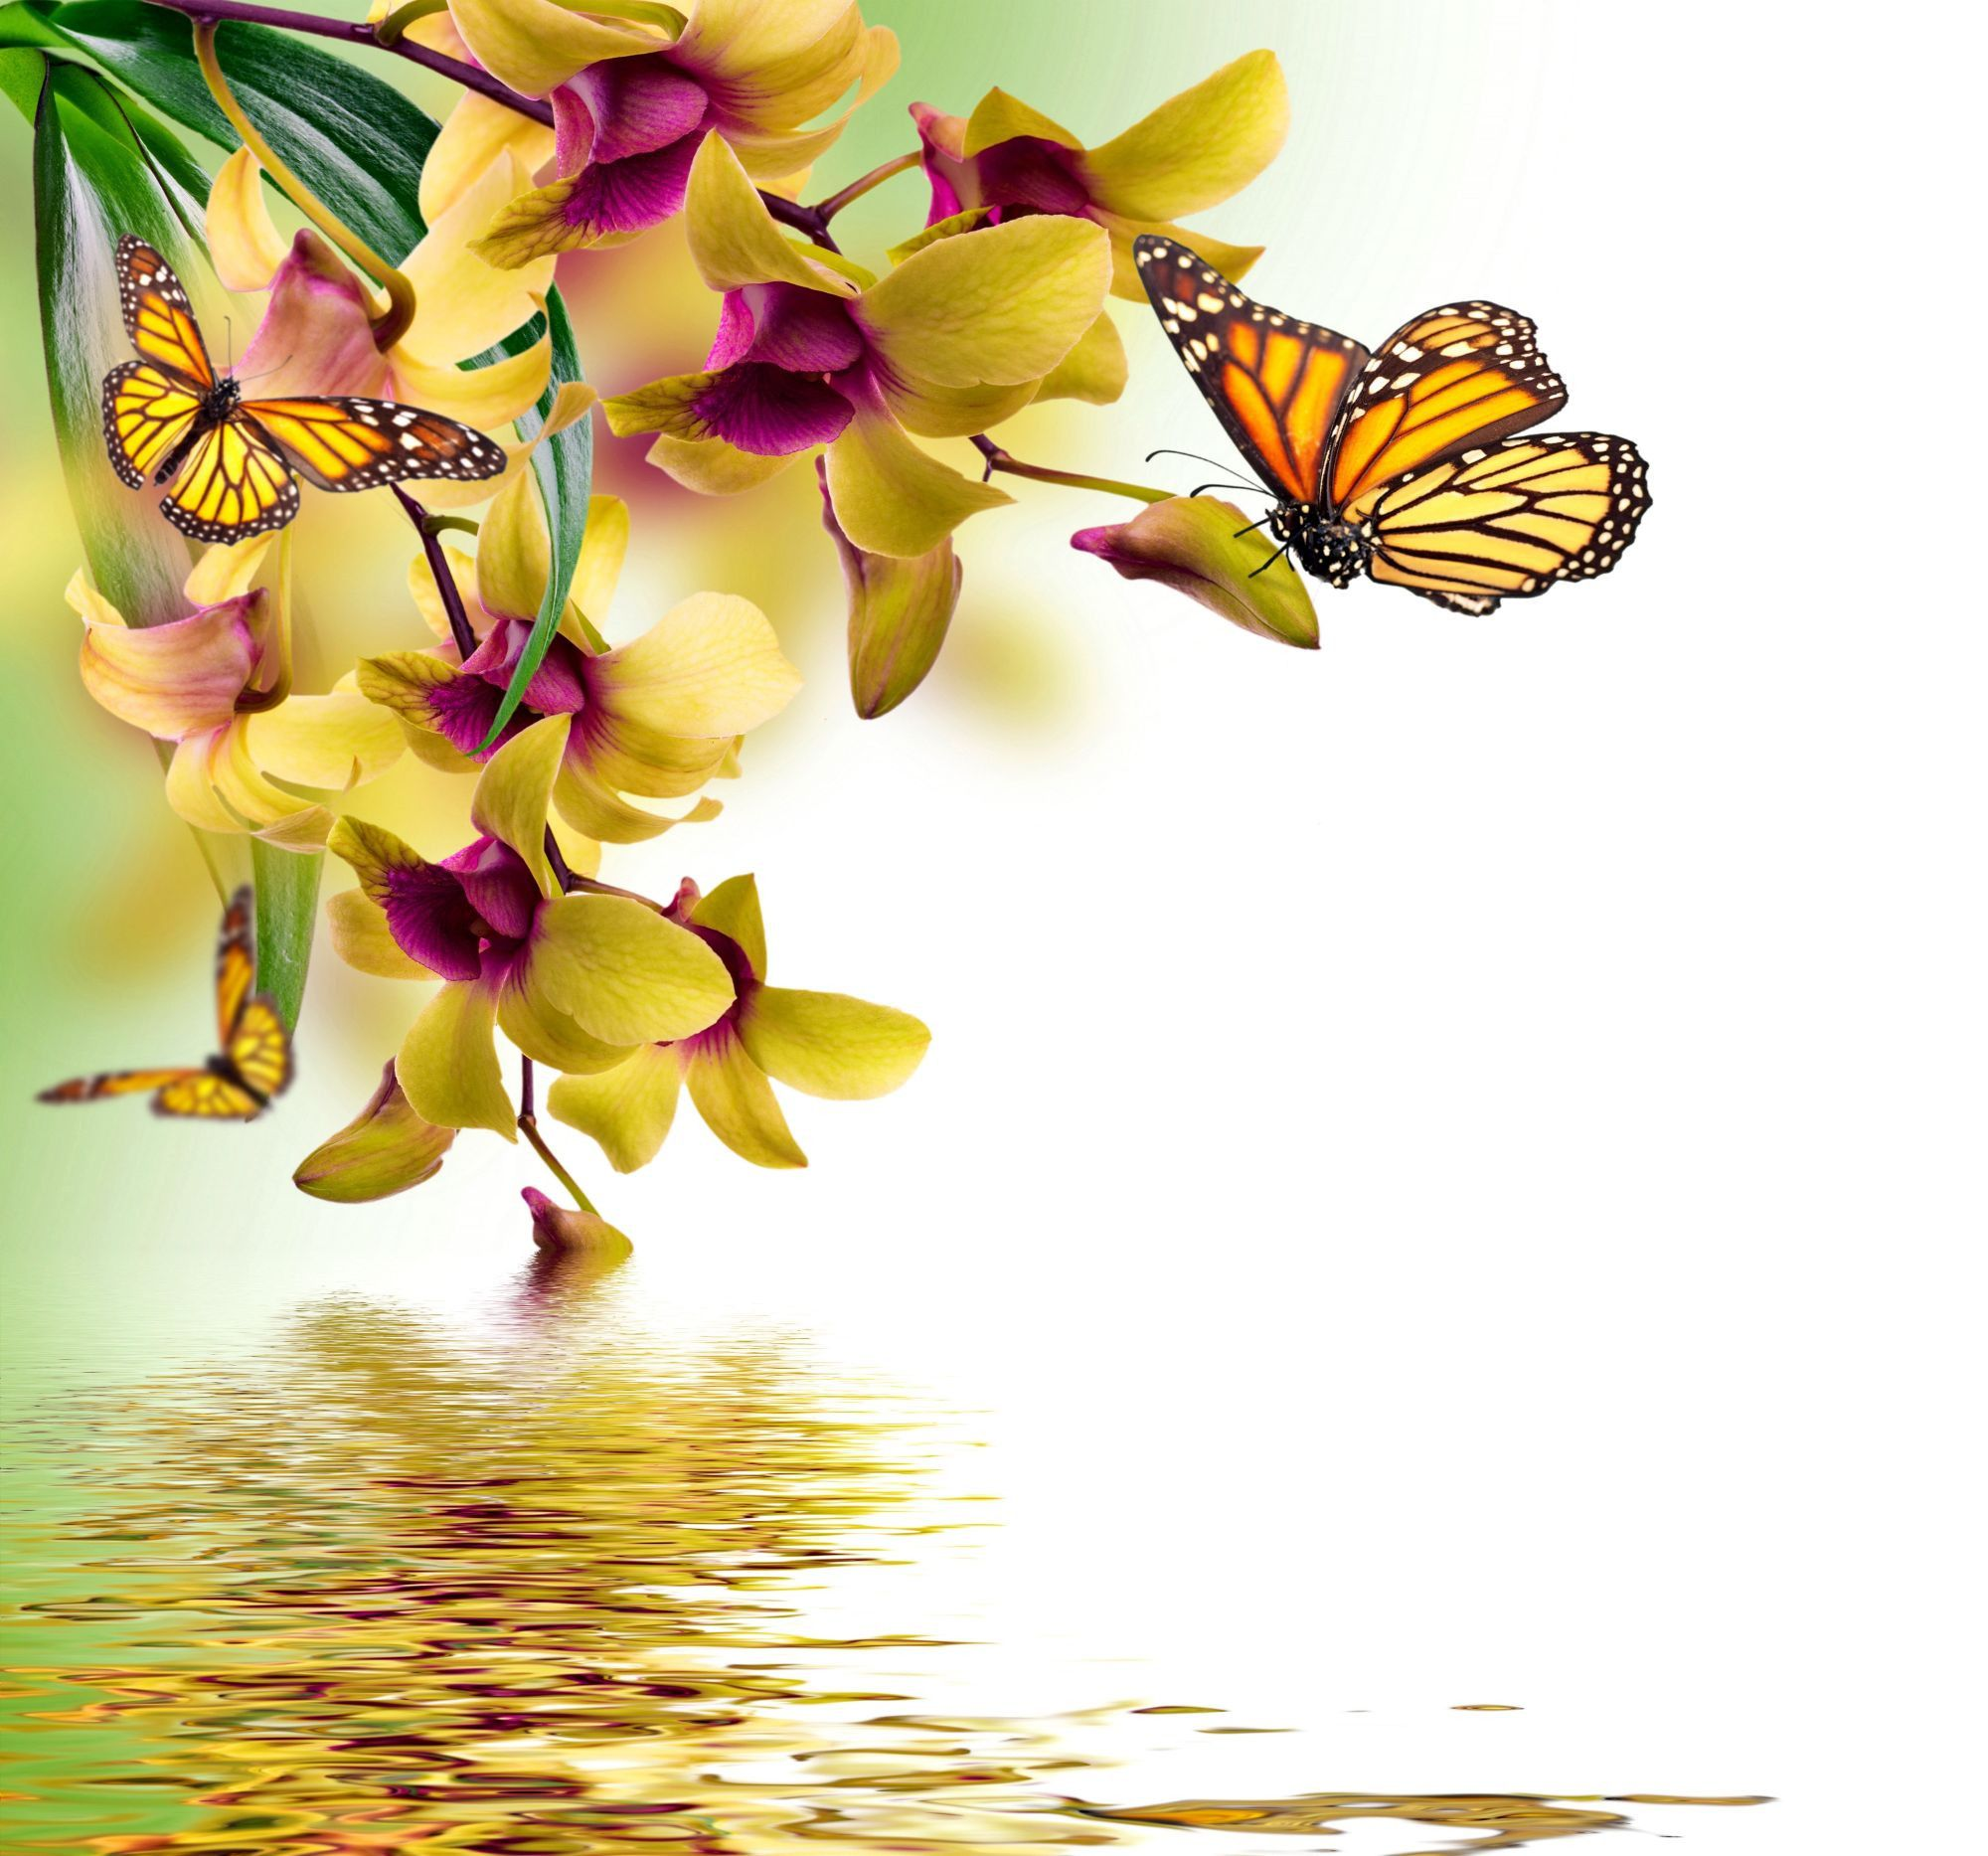 Beautiful Butterflies Sitting On Orchid Flowers By Hamid Raza Buy Posters Frames Canvas Digital Art Prints Orchids Beautiful Butterflies Floral Background